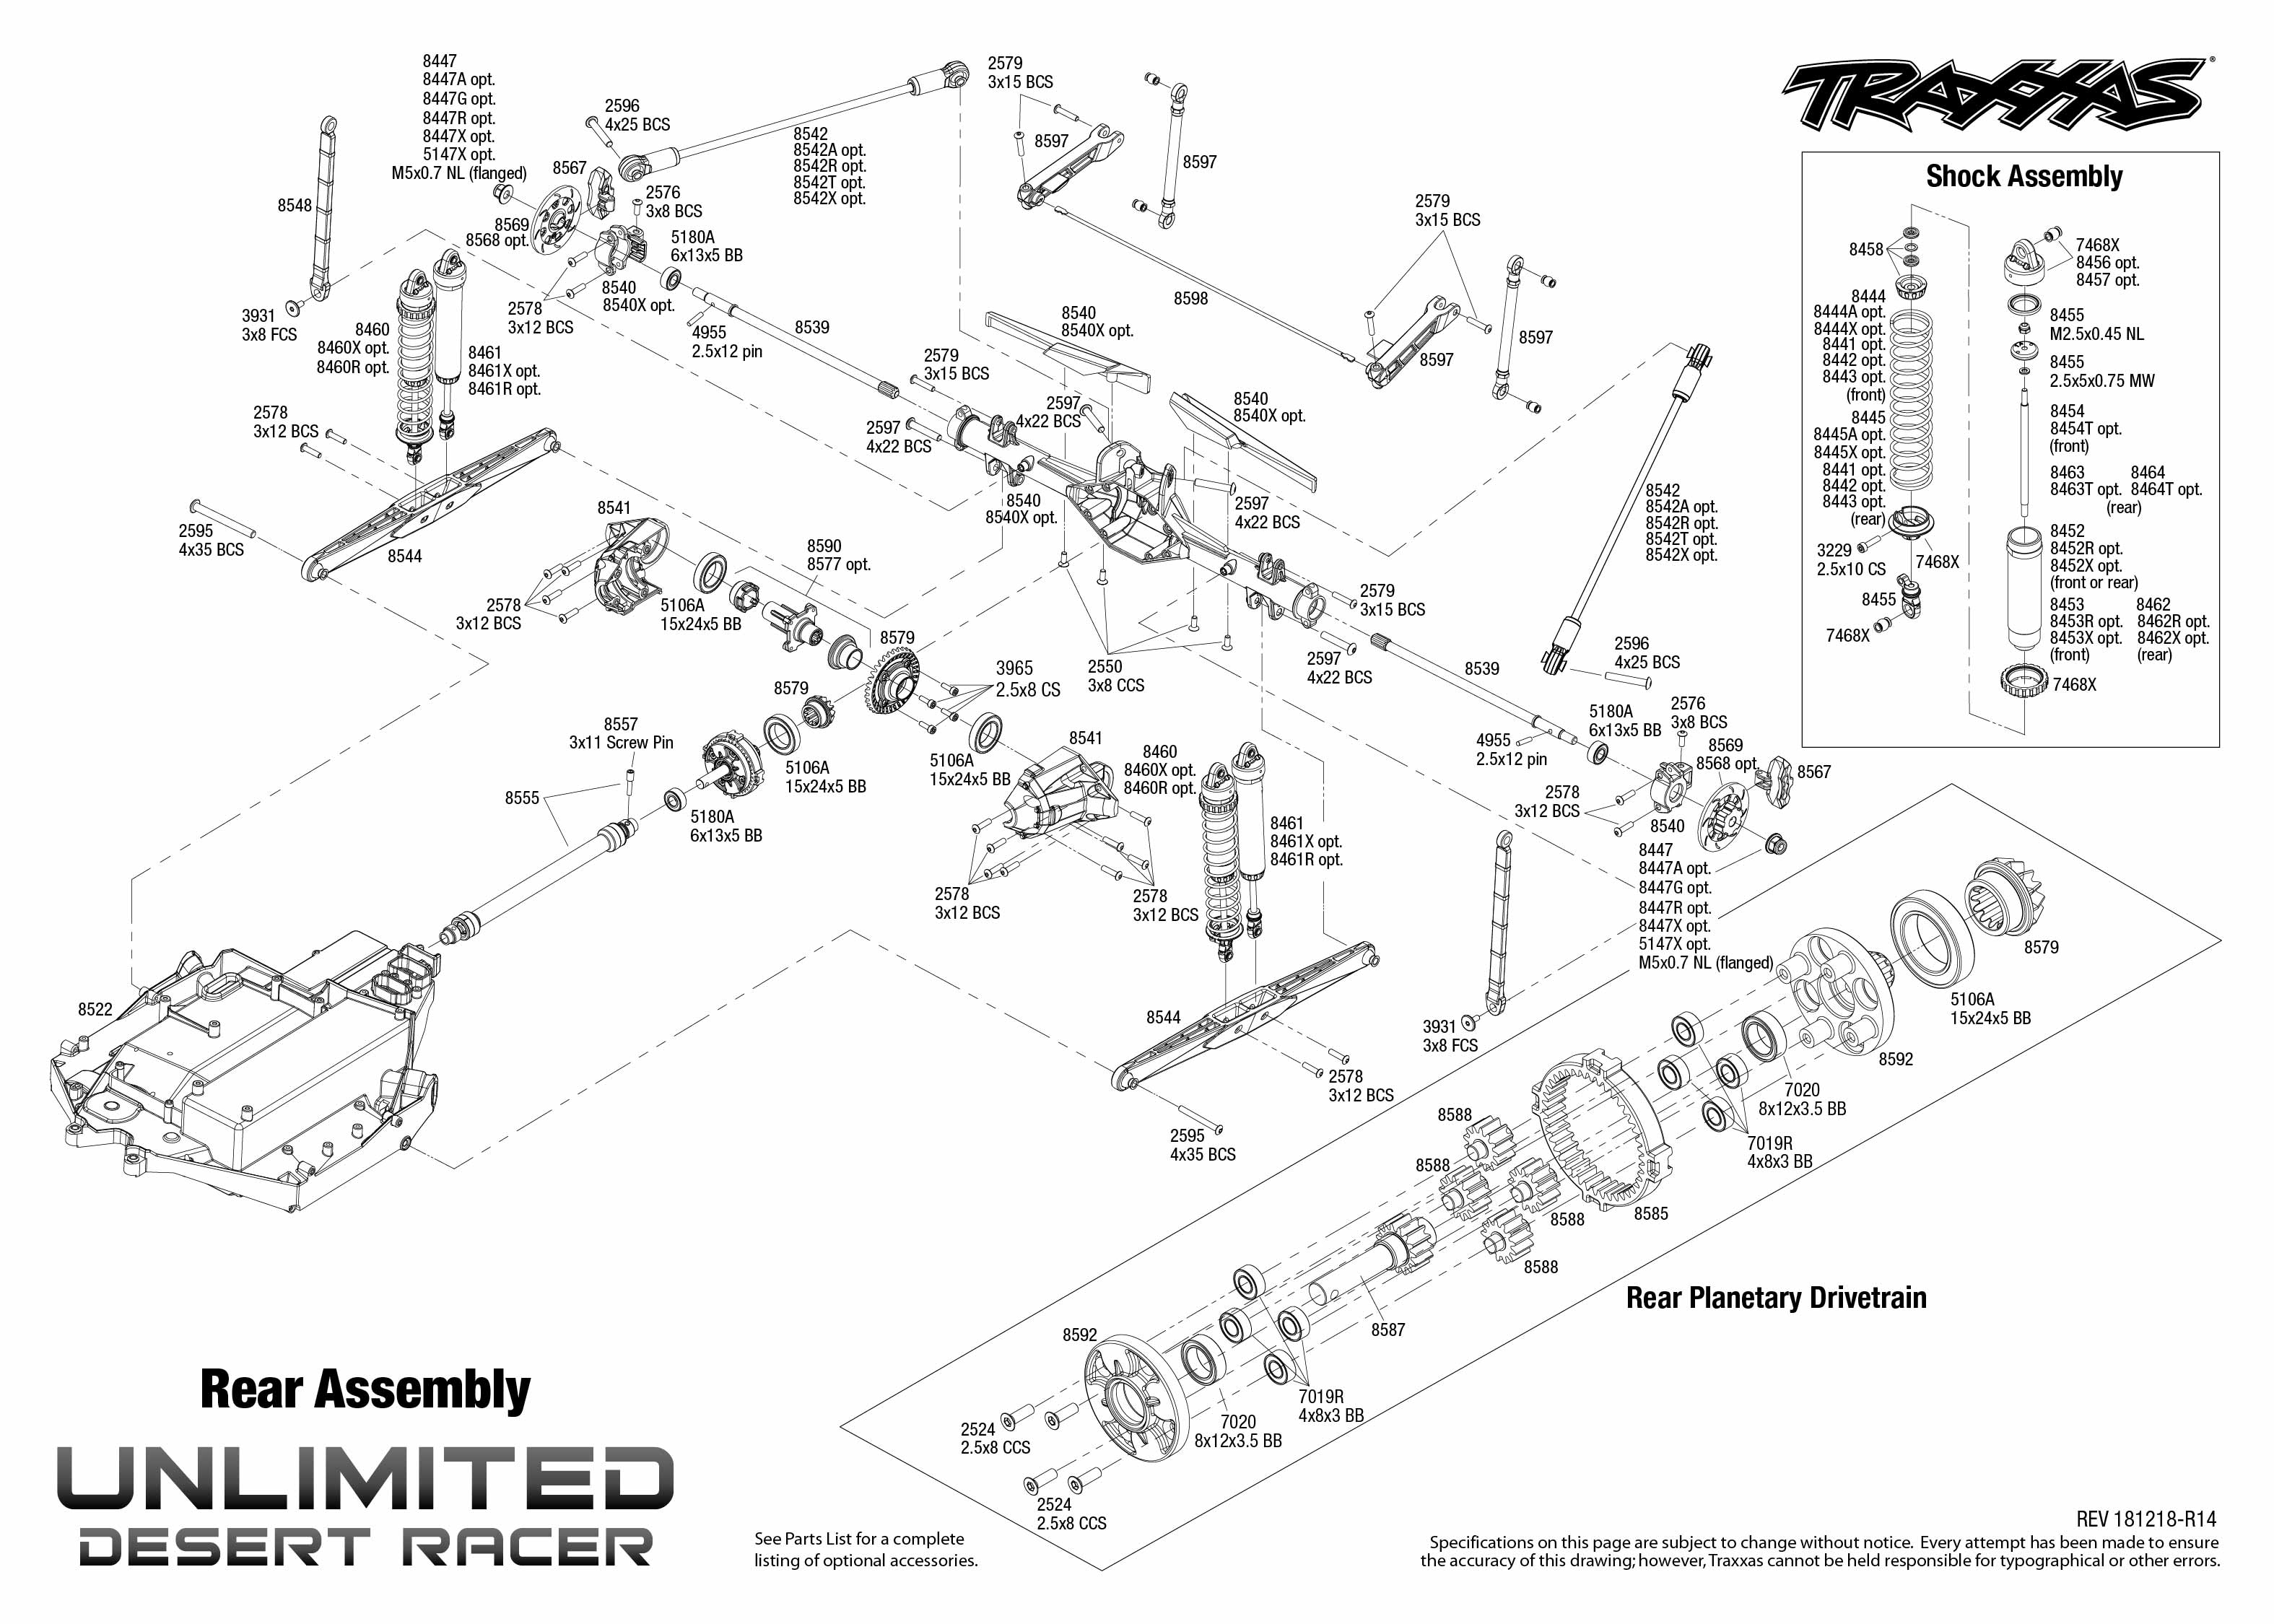 Traxxas Udr 85076-4_TQi_explodedviews_181218_85076-4%20Rear%20Assembly